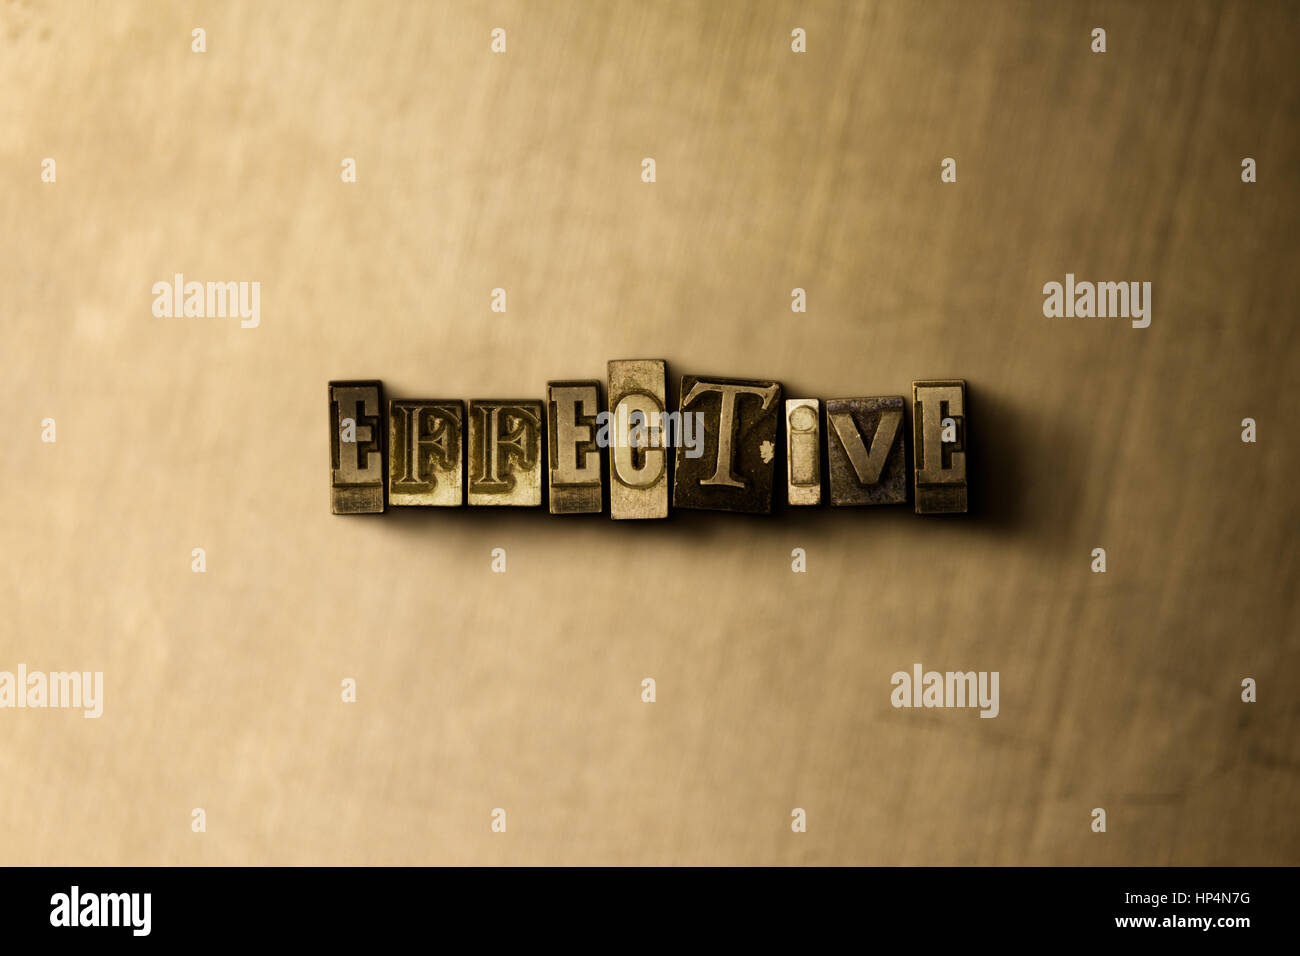 EFFECTIVE - close-up of grungy vintage typeset word on metal backdrop. Royalty free stock illustration.  Can be - Stock Image